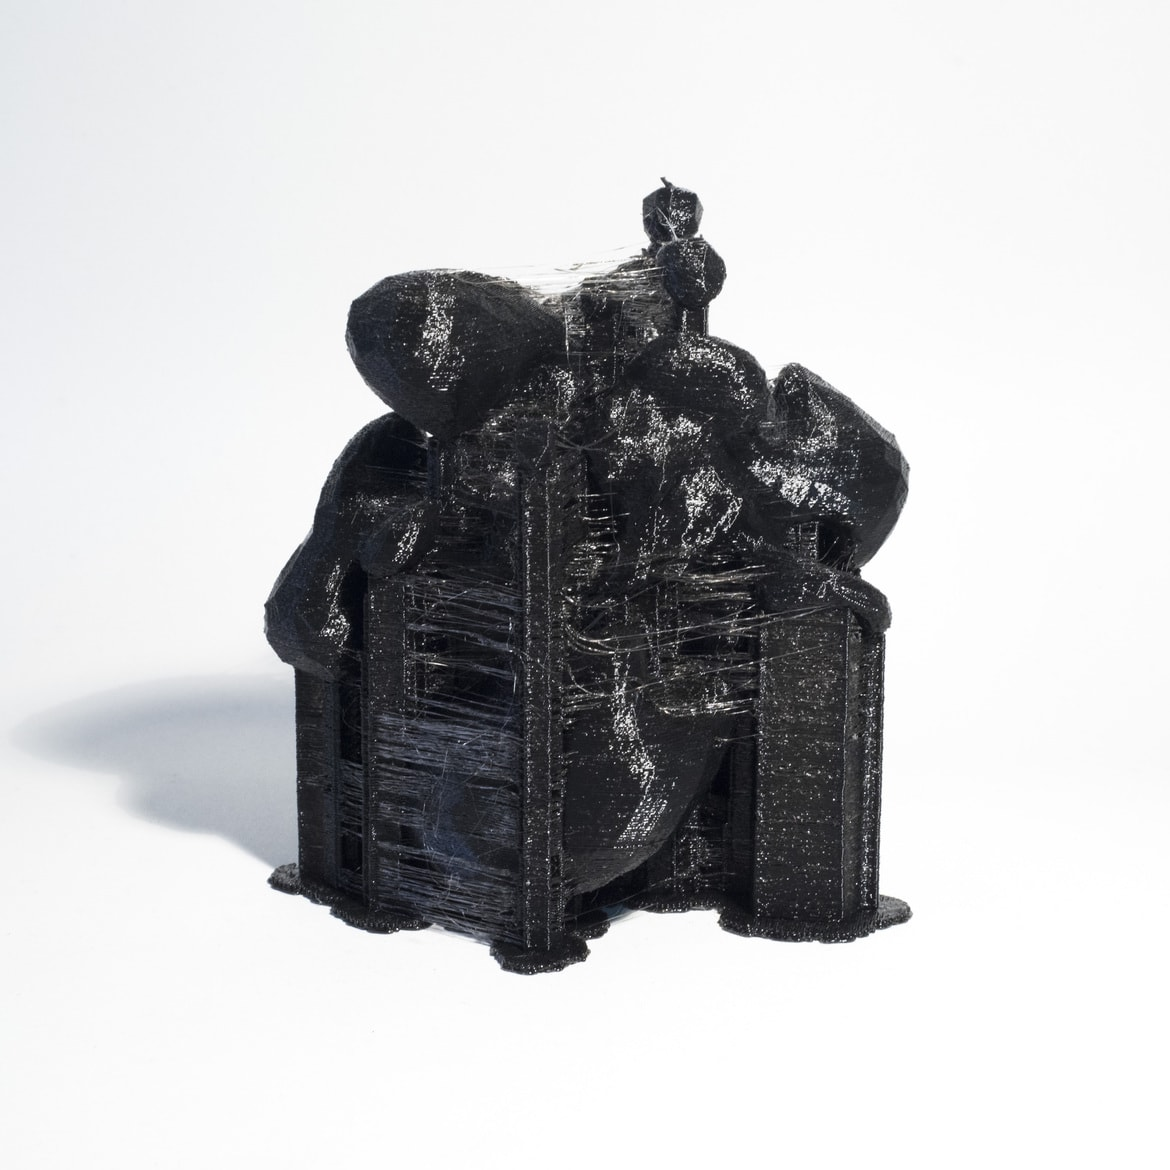 'City Constructed from Sleeping Brain Activity Data (no.07)', 2015, 3D printed PLA plastic, data, edition of 3 + 1AP